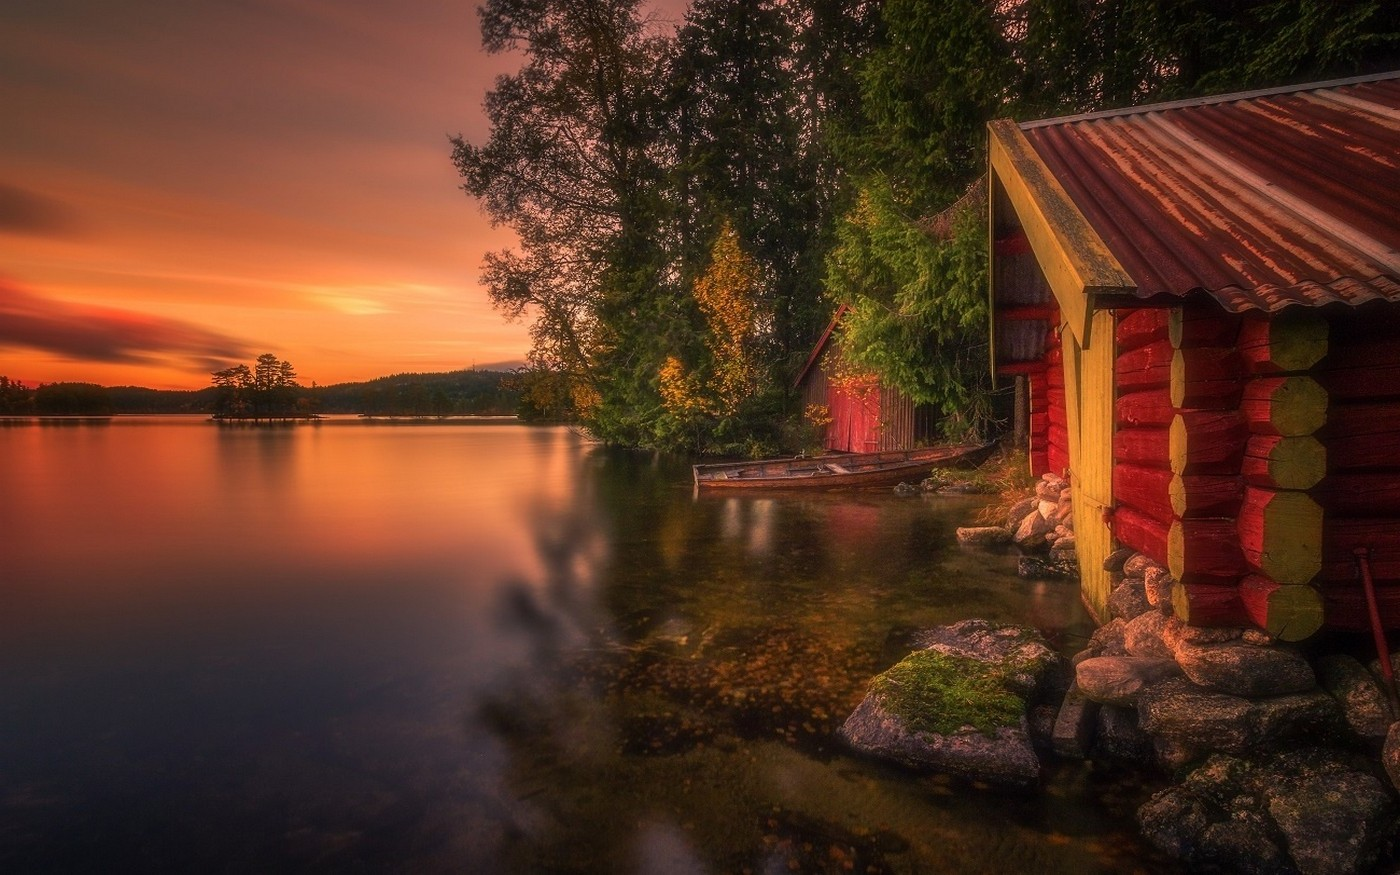 Wallpaper Sunset 3d Nature Landscape Boathouses Lake Trees Norway Fall